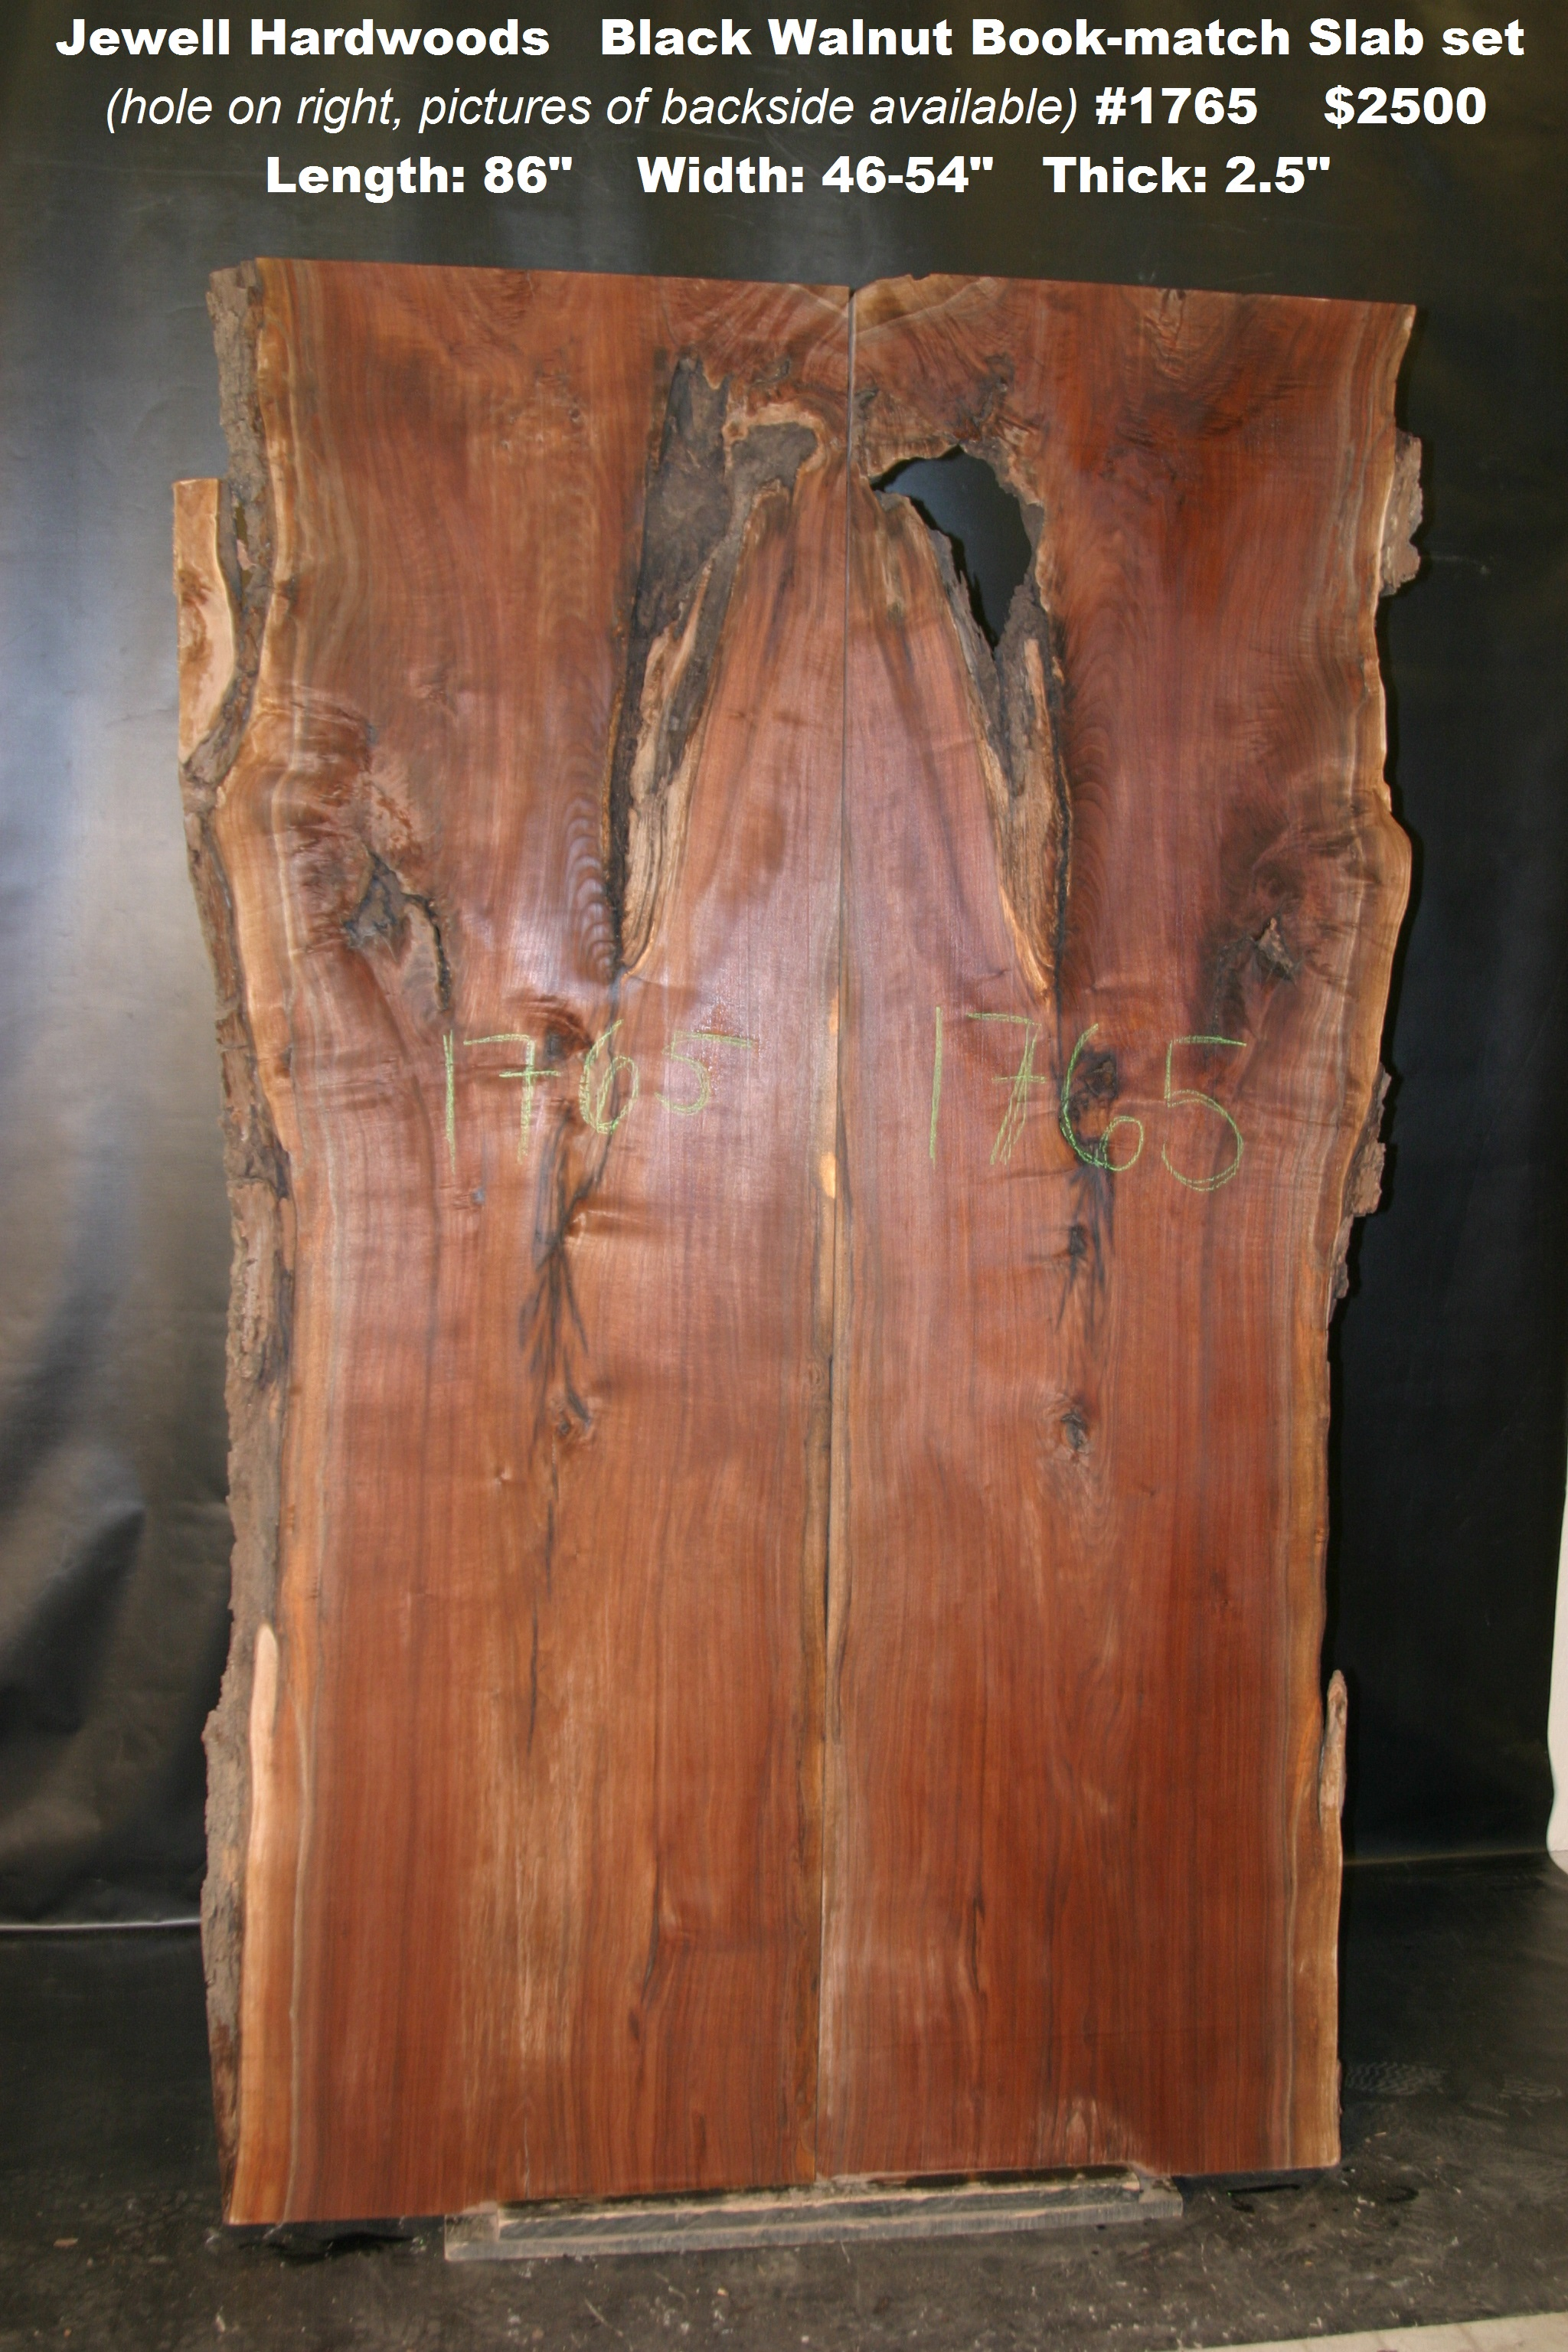 1765-bookmatch-slab-set-jewell-hardwoods